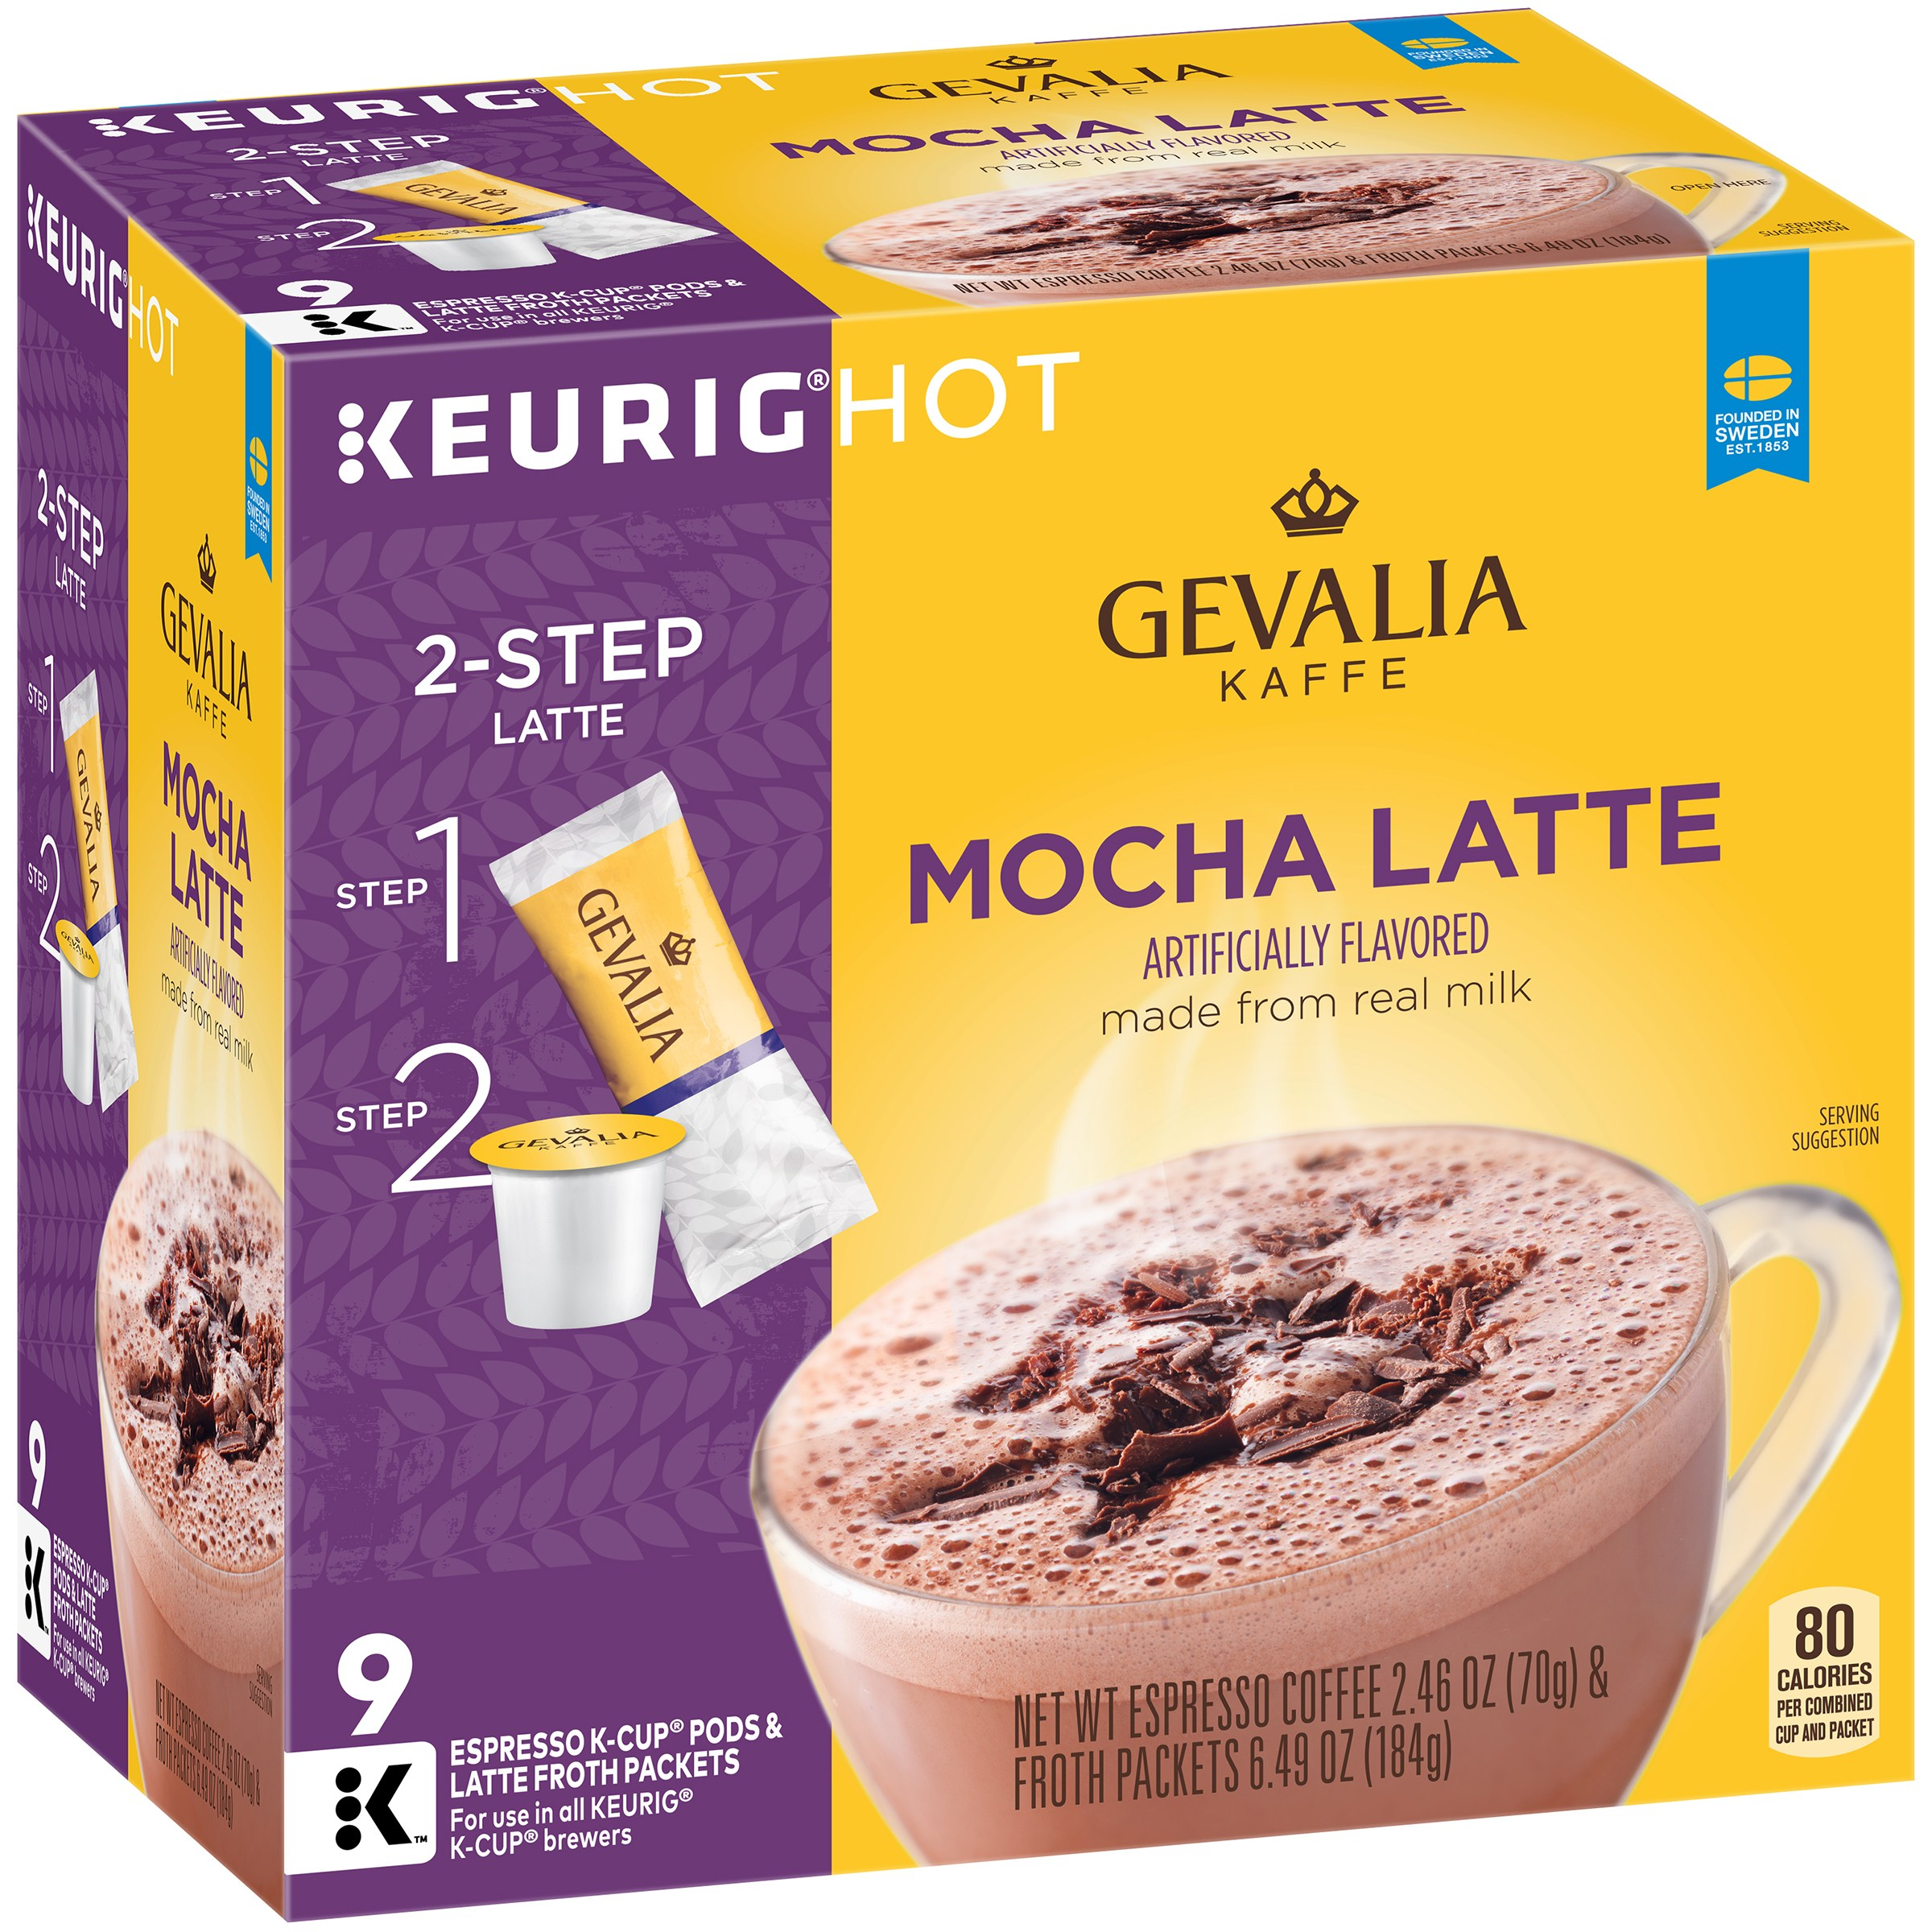 Gevalia Mocha Latte Espresso Coffee K-Cup® Packs & Froth Packets 9 ct Box 4300005841